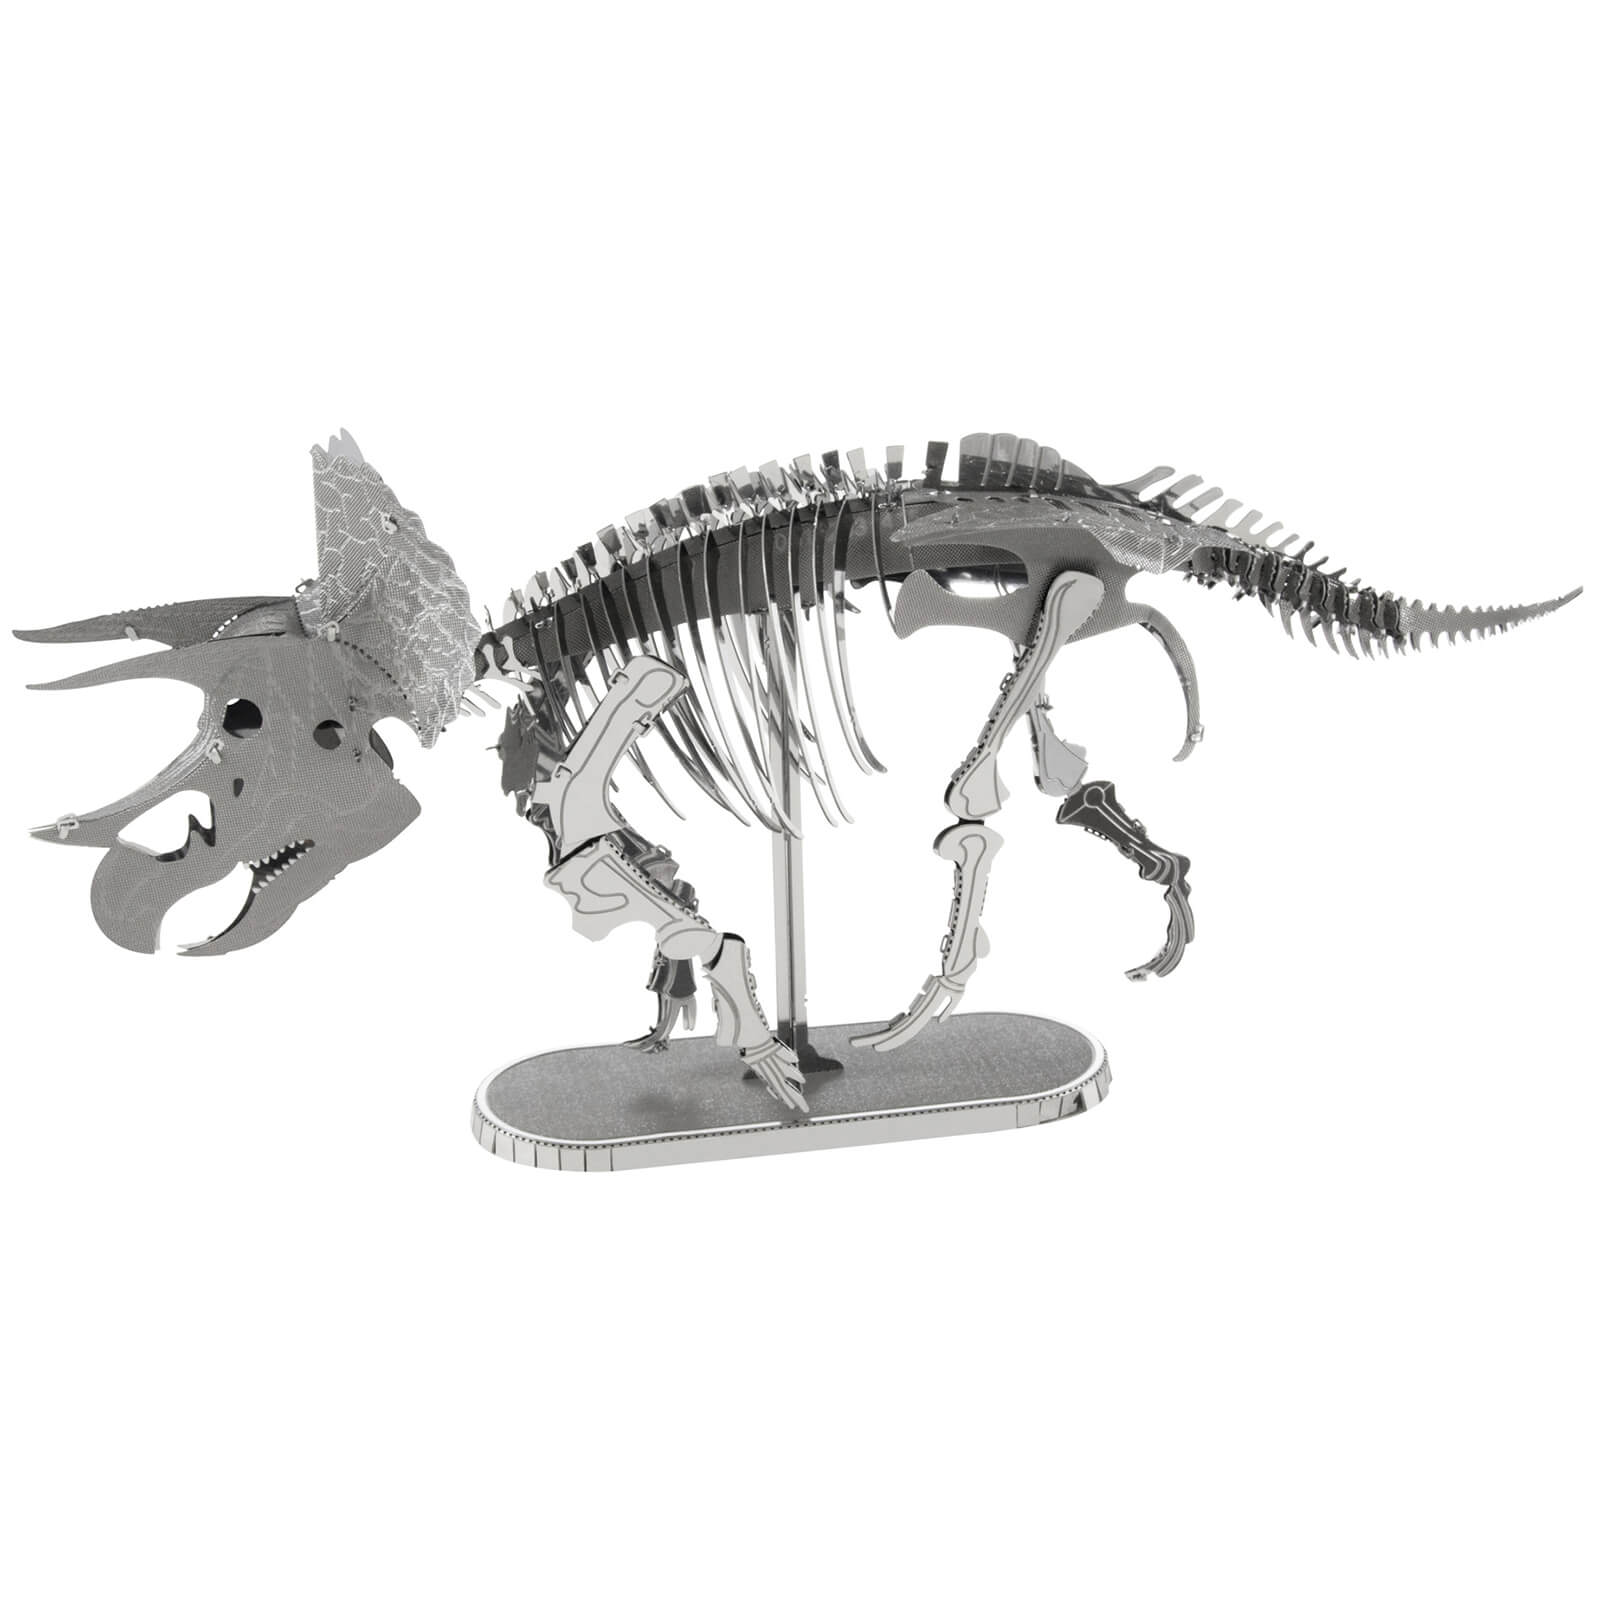 Metal Earth Dinosaurs - Triceratops Construction Kit